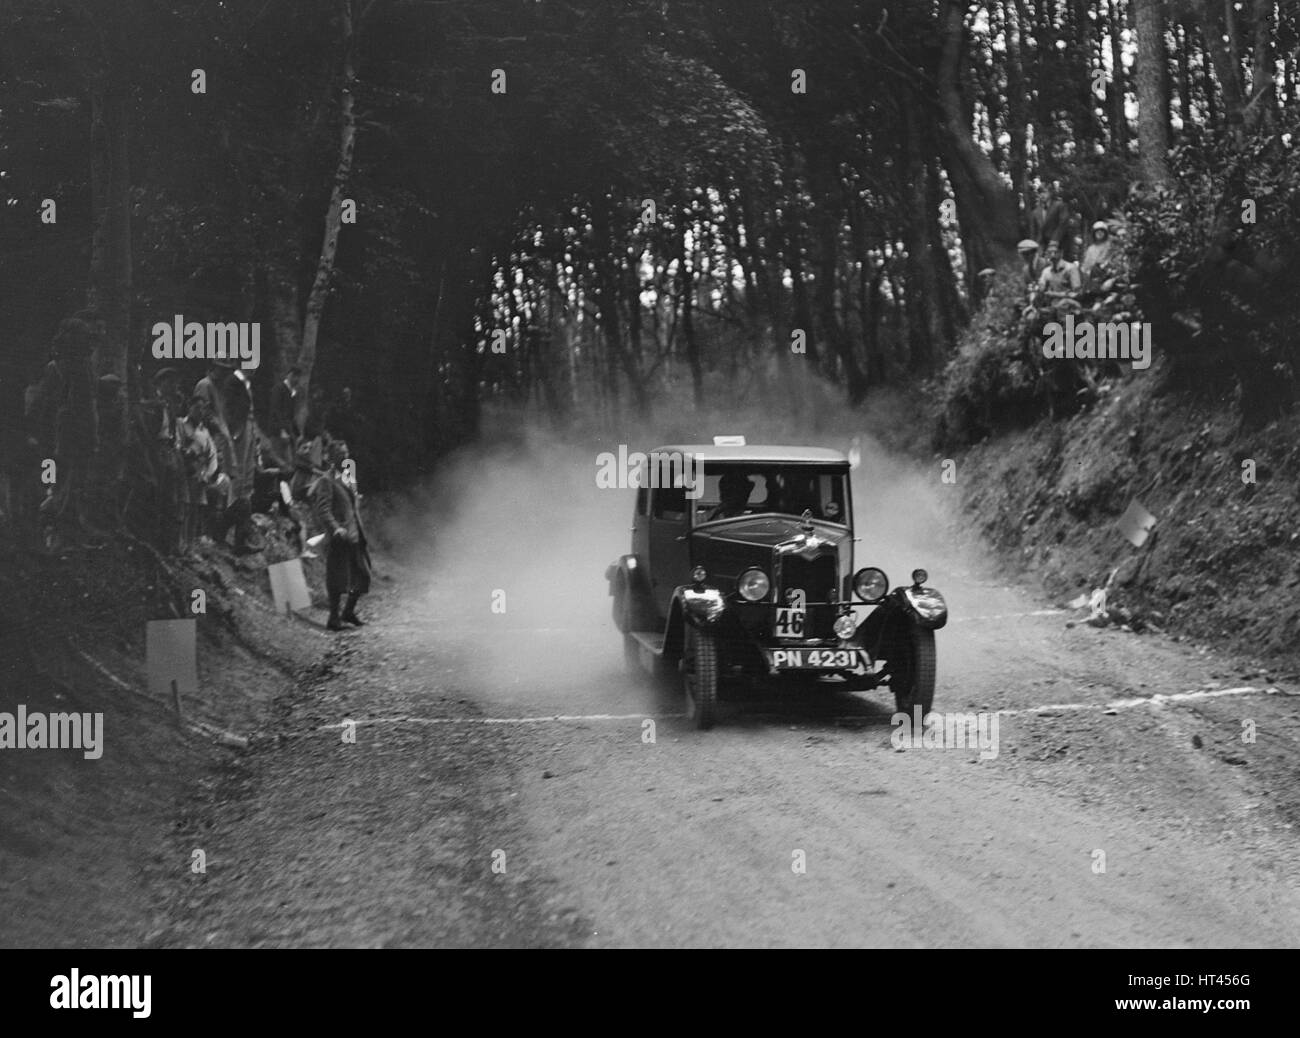 Riley taking part in a motoring trial, c1930s. Artist: Bill Brunell. - Stock Image